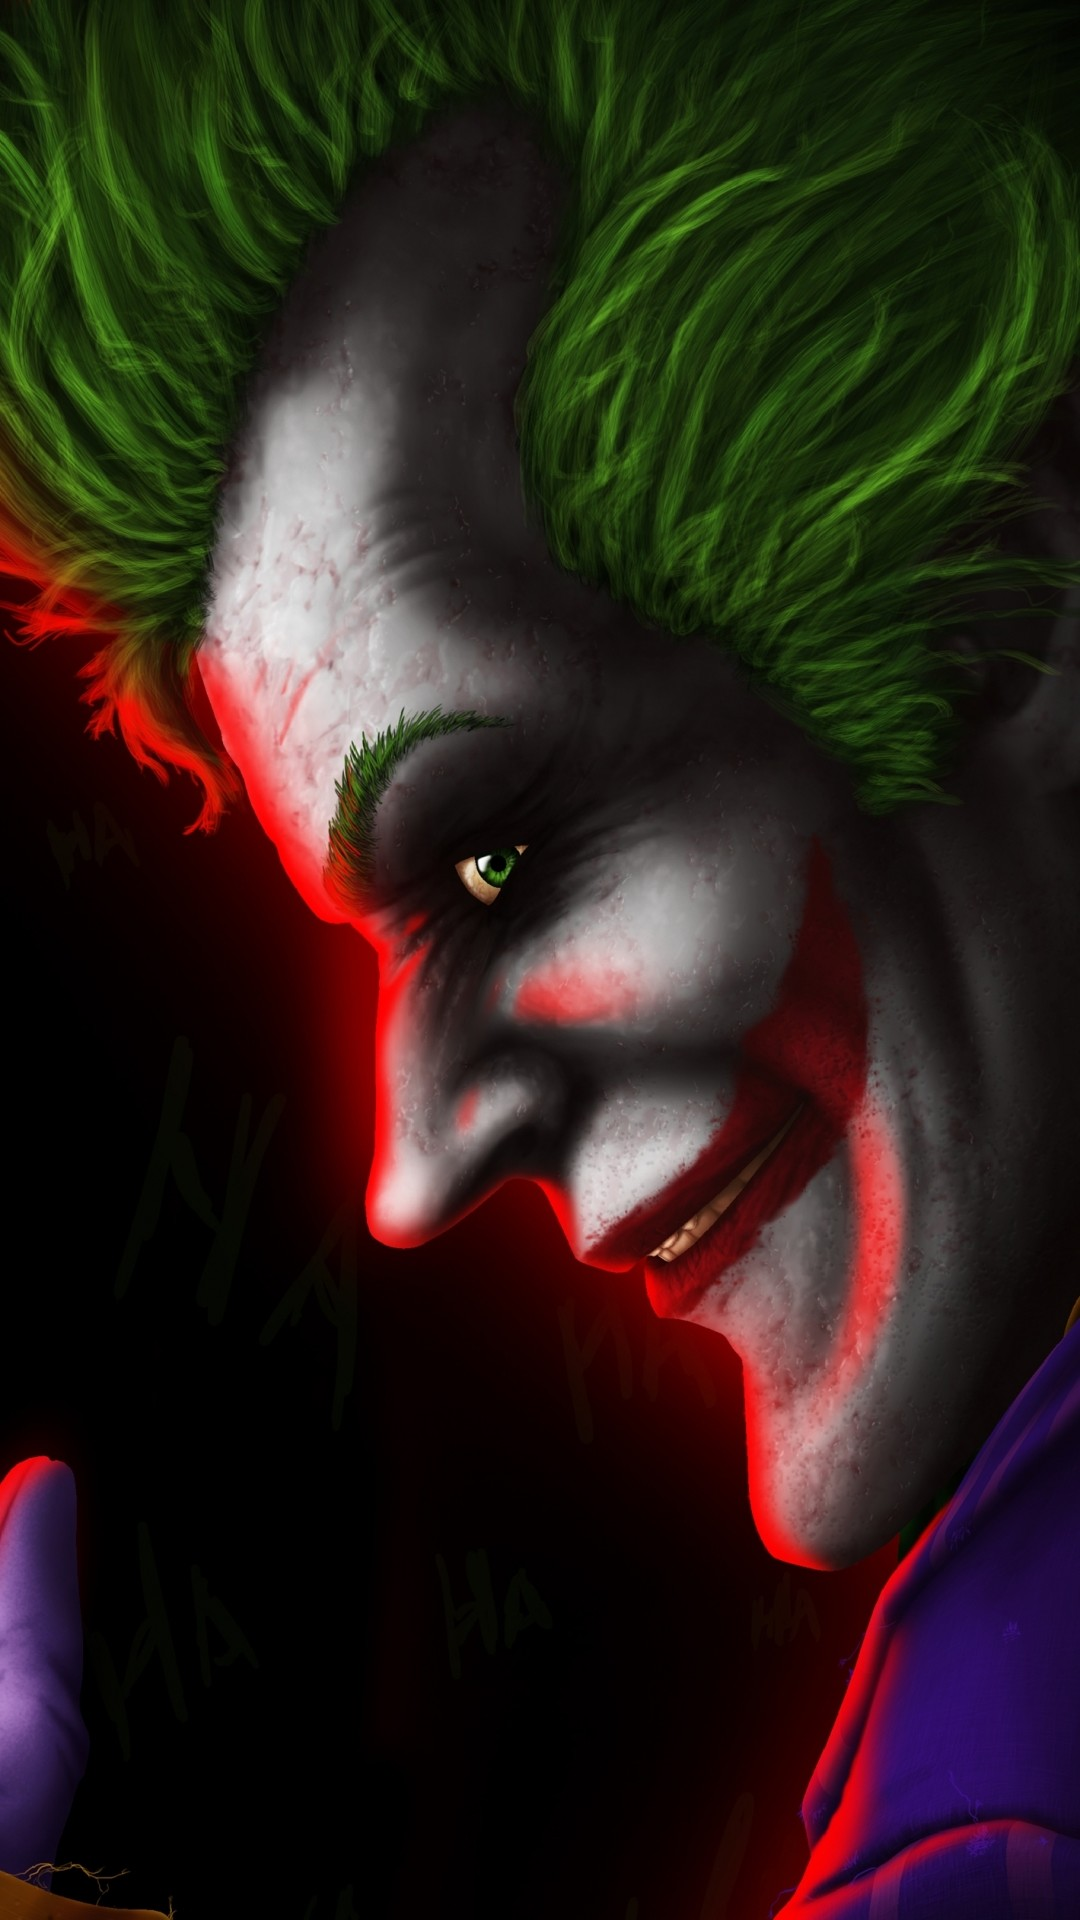 1080x1920 Joker Wallpaper IPhone 6S Plus By DeviantSith17 On DeviantArt